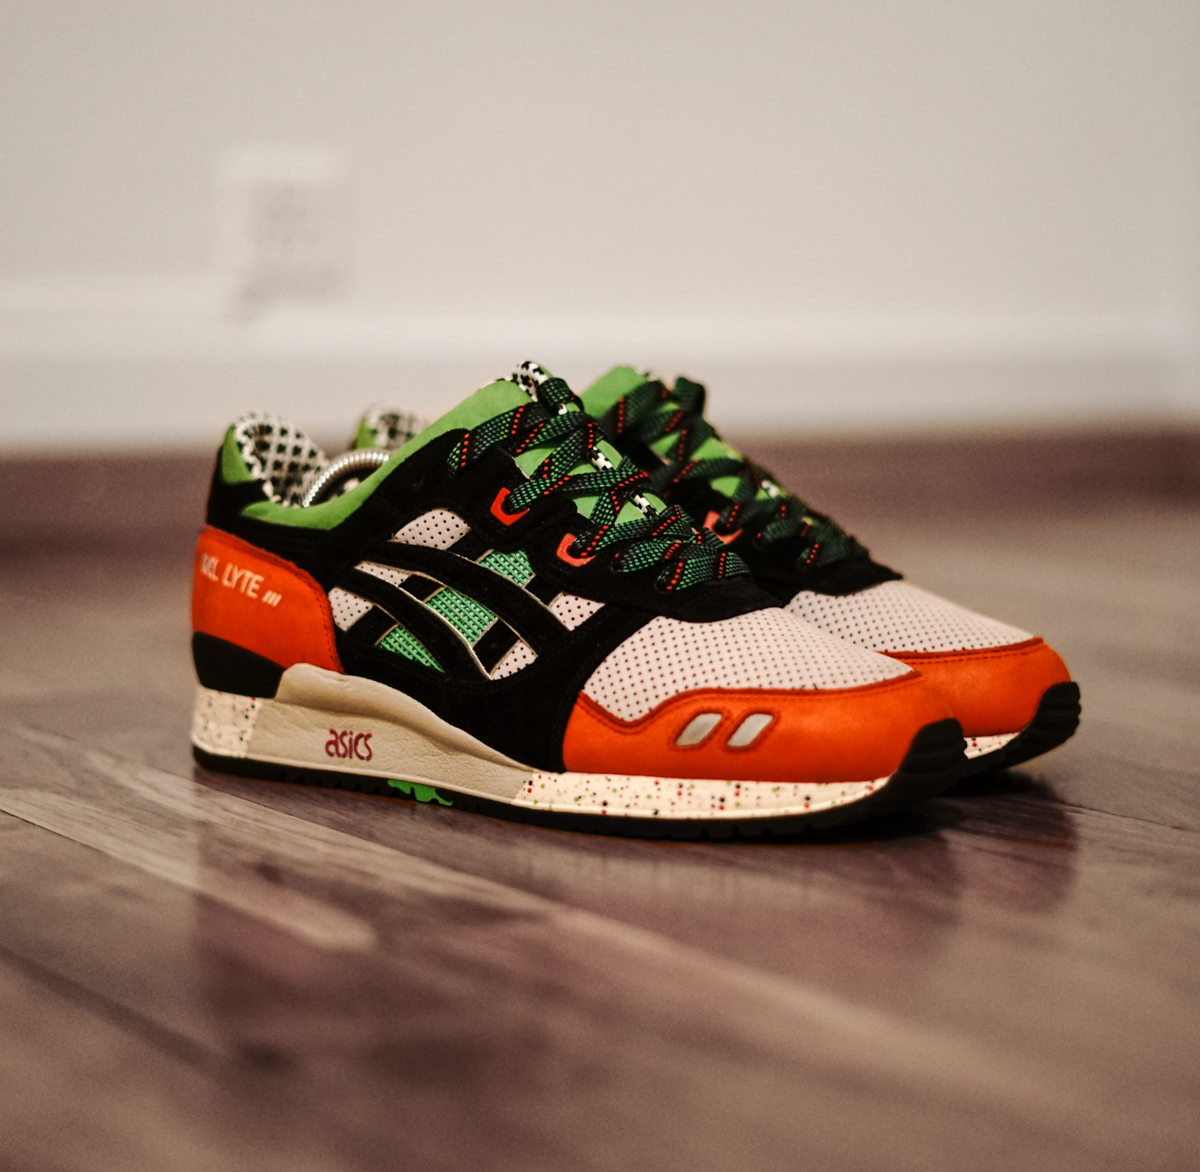 Patta x Asics Gel Lyte III Sample